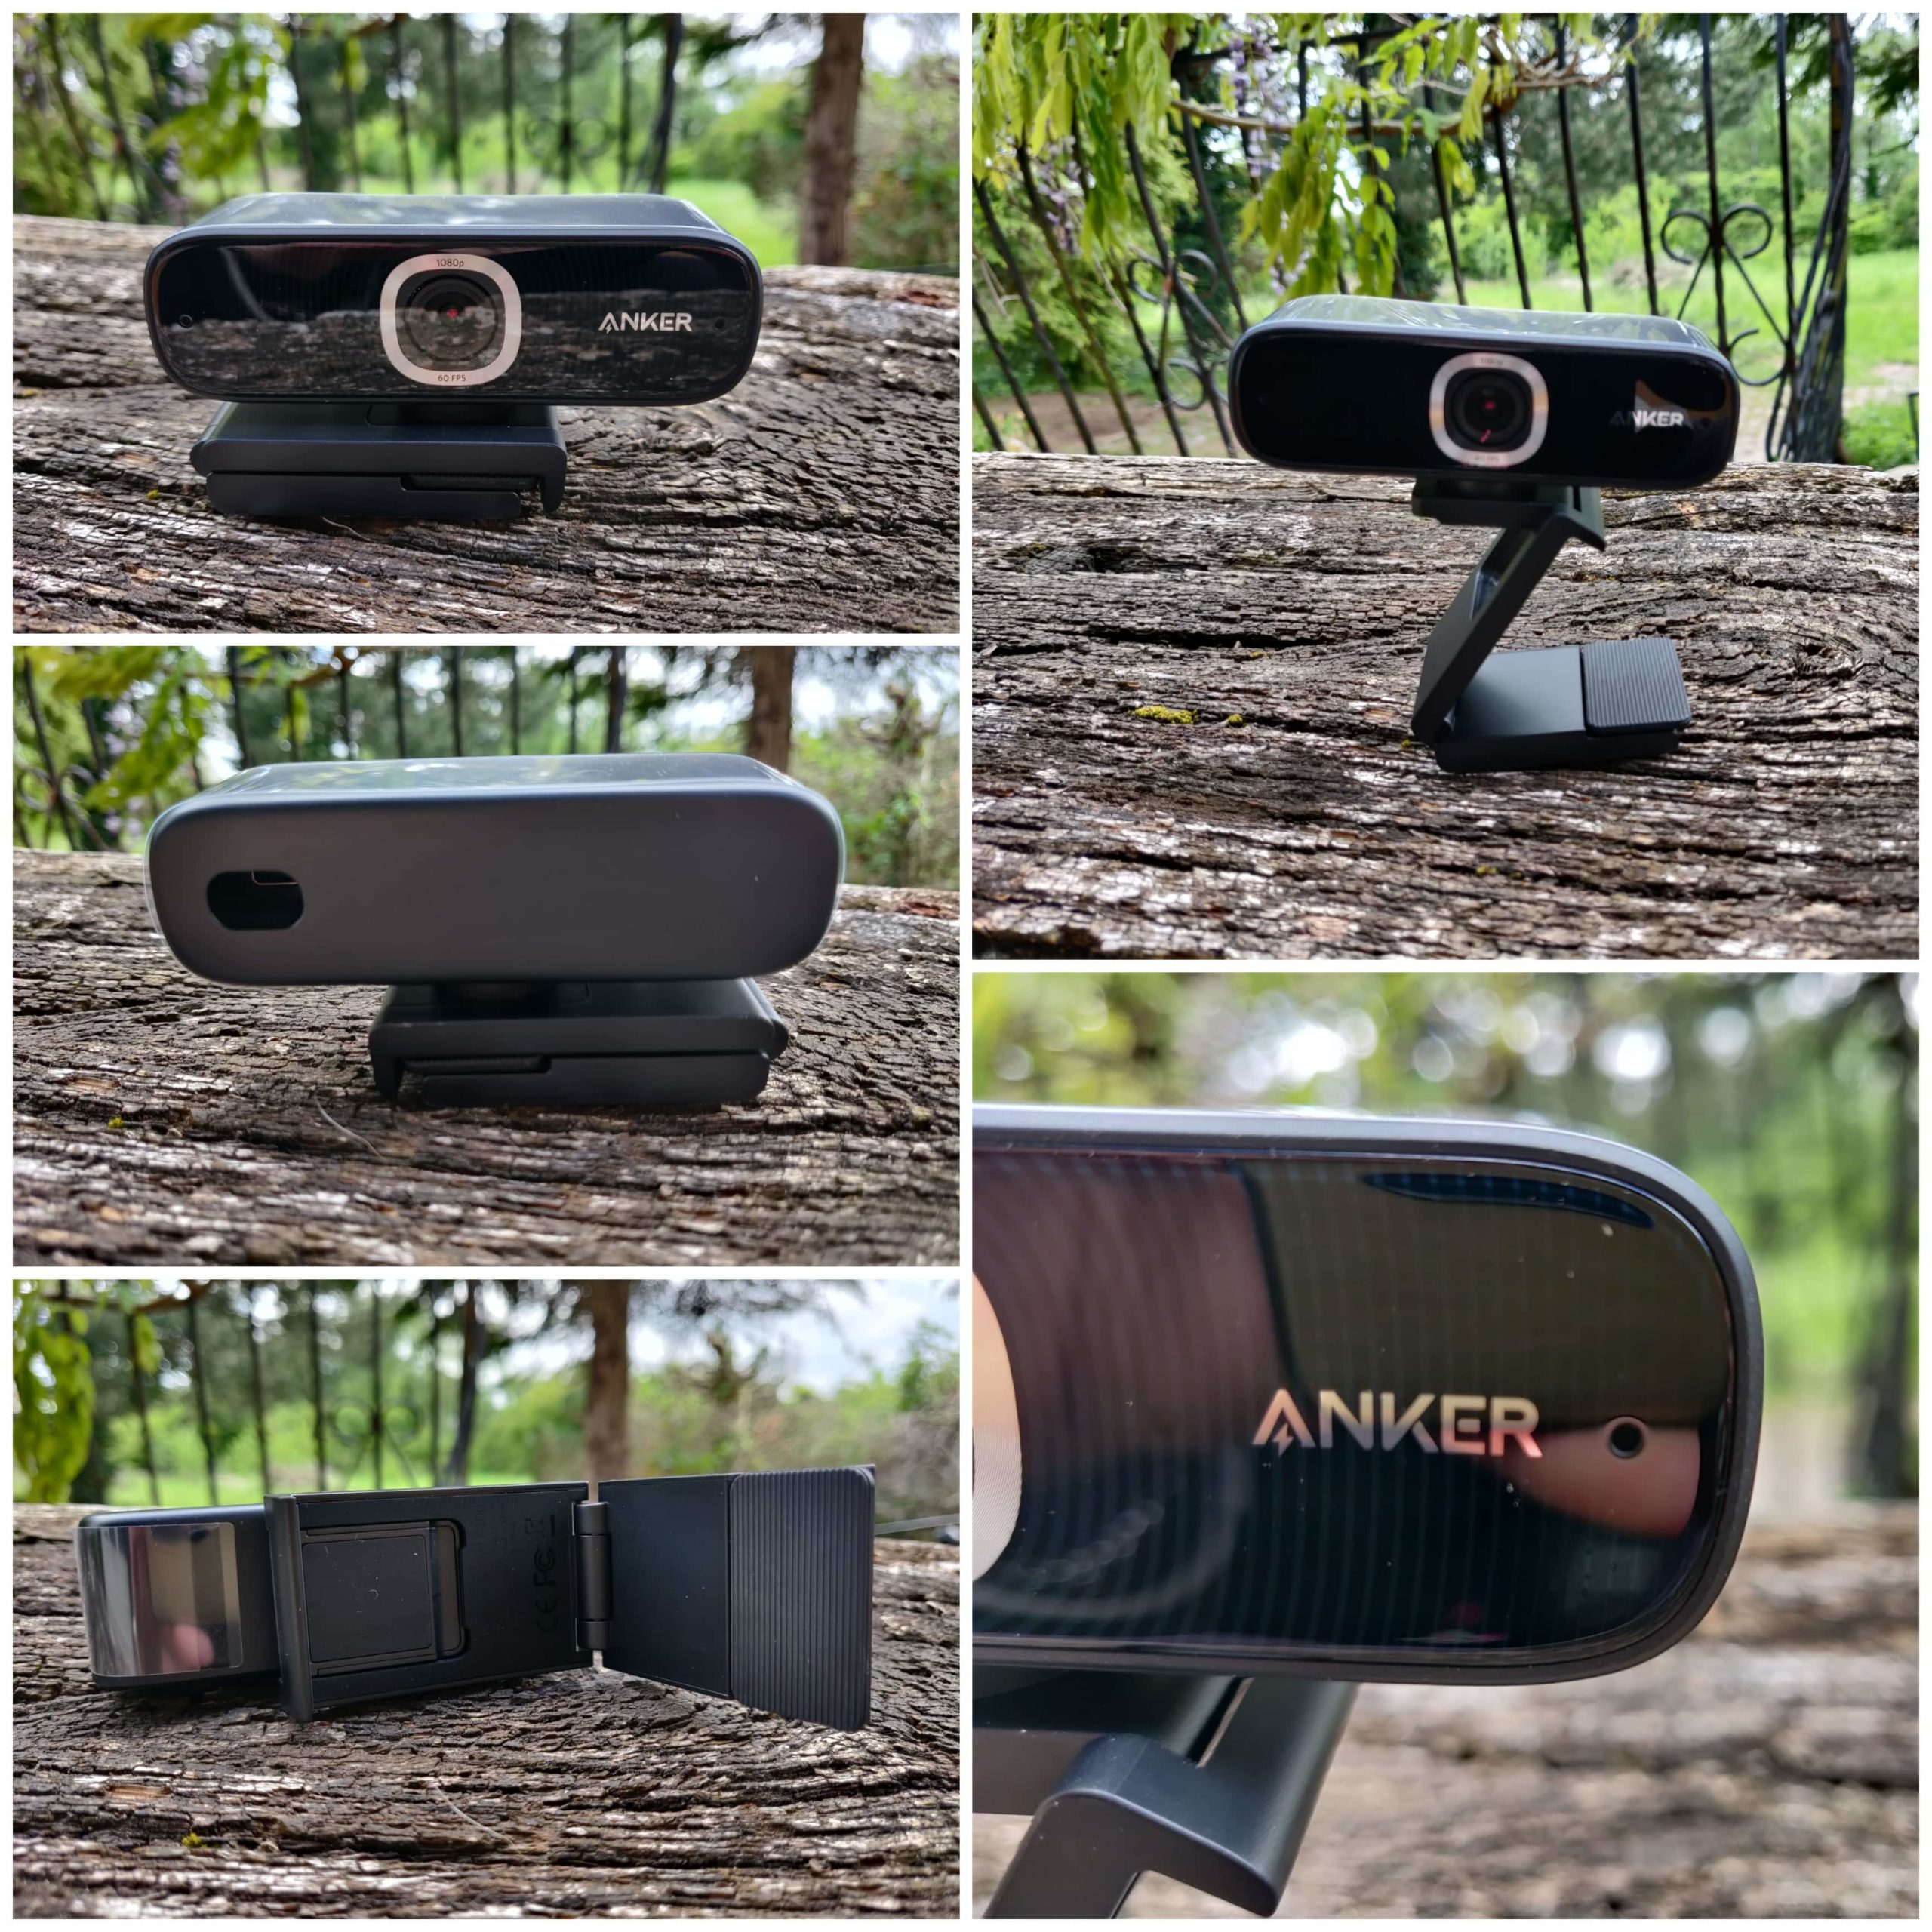 Anker C300 différents angles